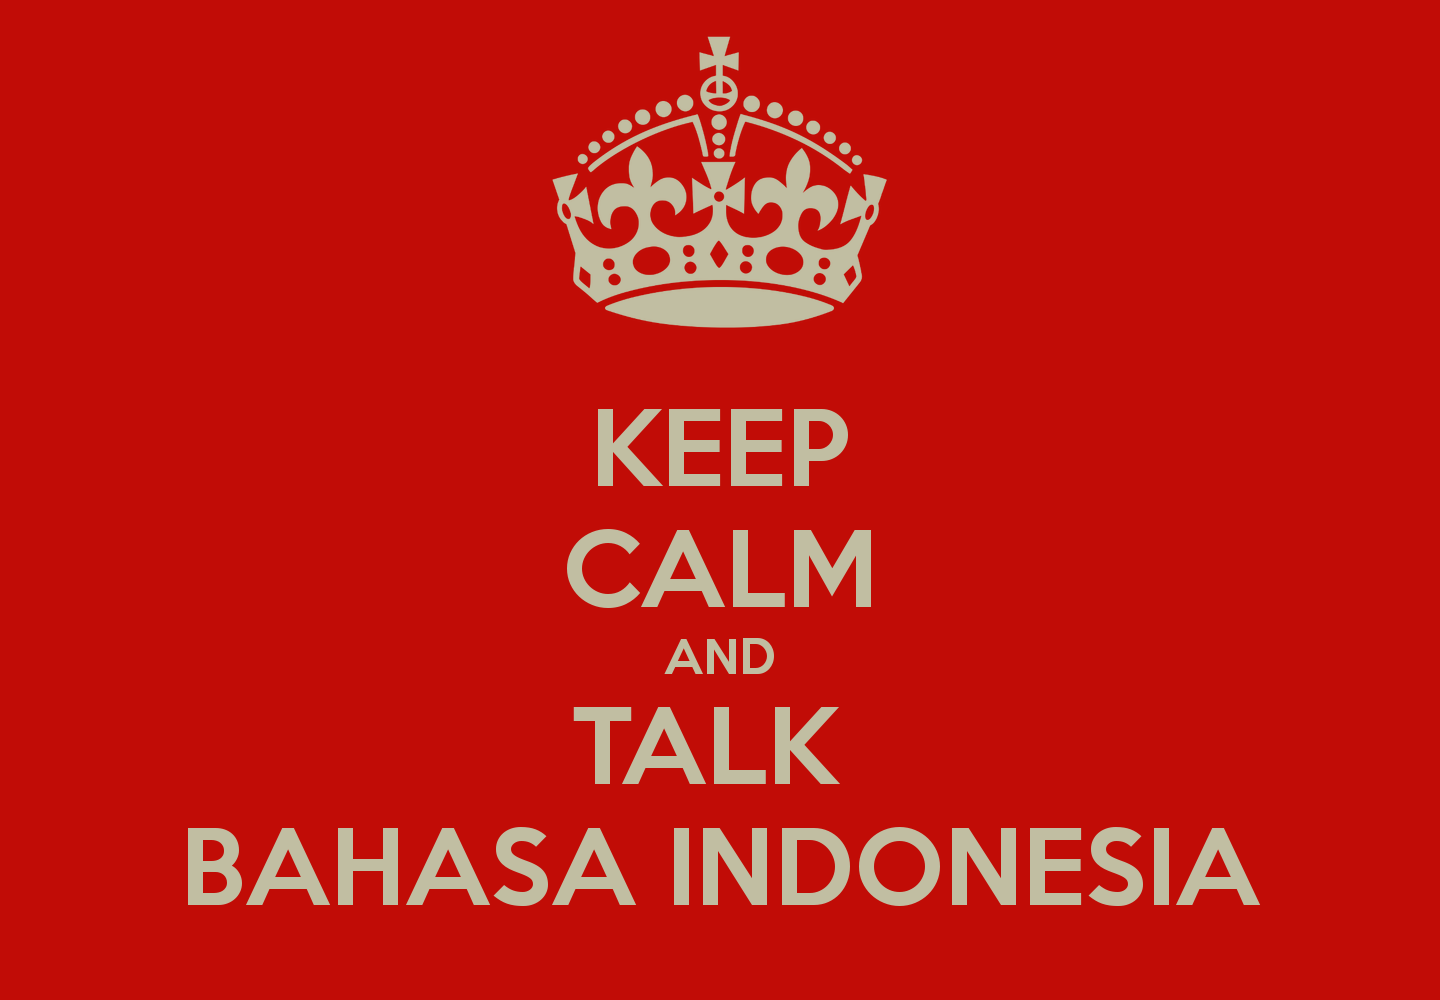 https://i0.wp.com/2.bp.blogspot.com/-PlR4XUtV1OM/UvEFxgftxlI/AAAAAAAAACw/UmhZrTHfMWc/s1600/keep-calm-and-talk-bahasa-indonesia-2.png?resize=500%2C347